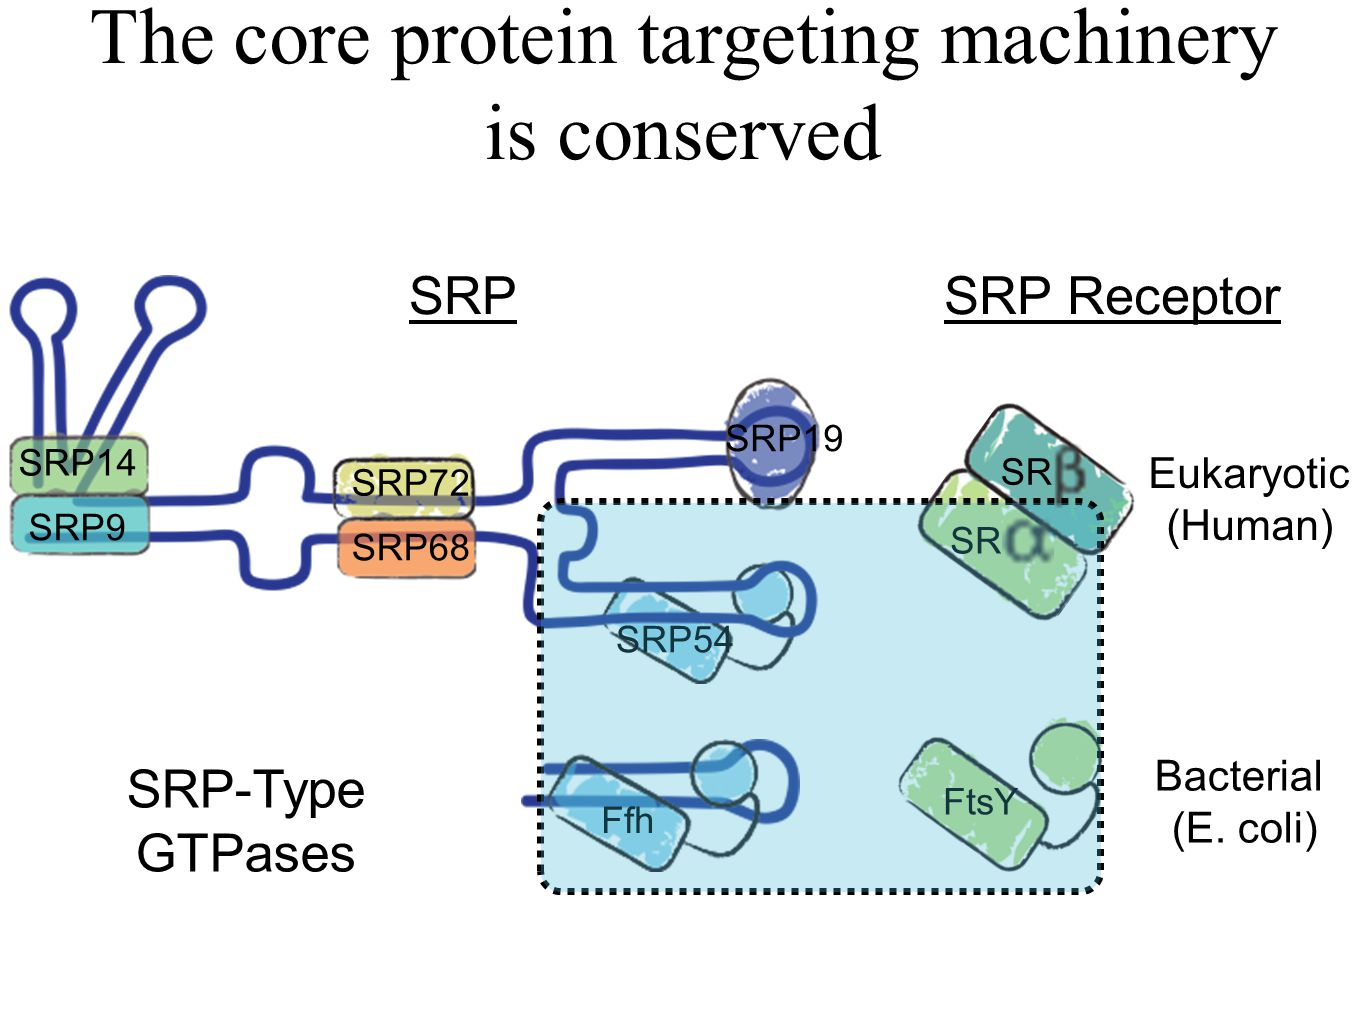 The core protein targeting machinery is conserved Eukaryotic (Human) Bacterial (E. coli) Ffh FtsY SR SRP54 SRP68 SRP72 SRP19 SRP9 SRP14 SRPSRP Recepto